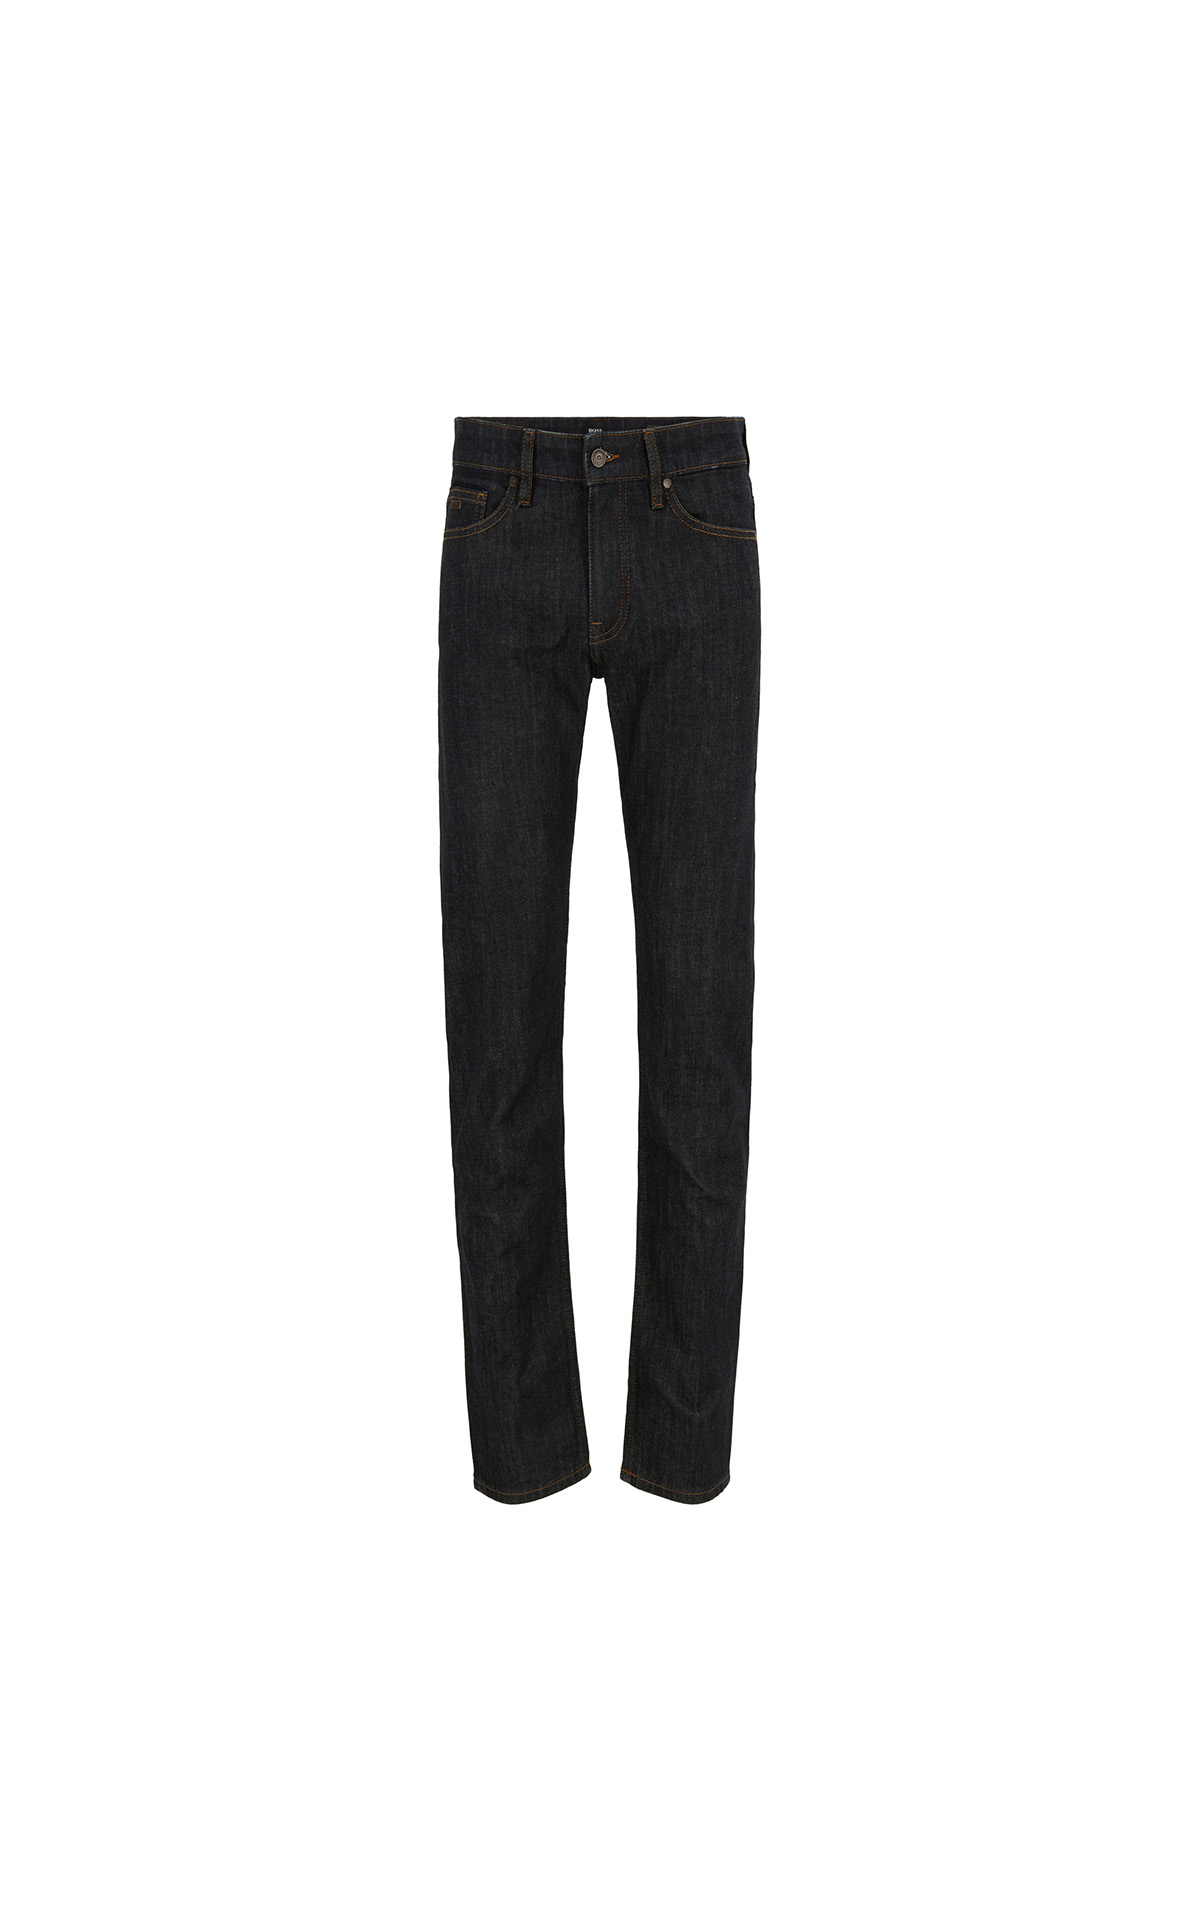 Boss Delaware BC-C Slim-fit jeans in rinse-washed stretch denim at The Bicester Village Shopping Collection